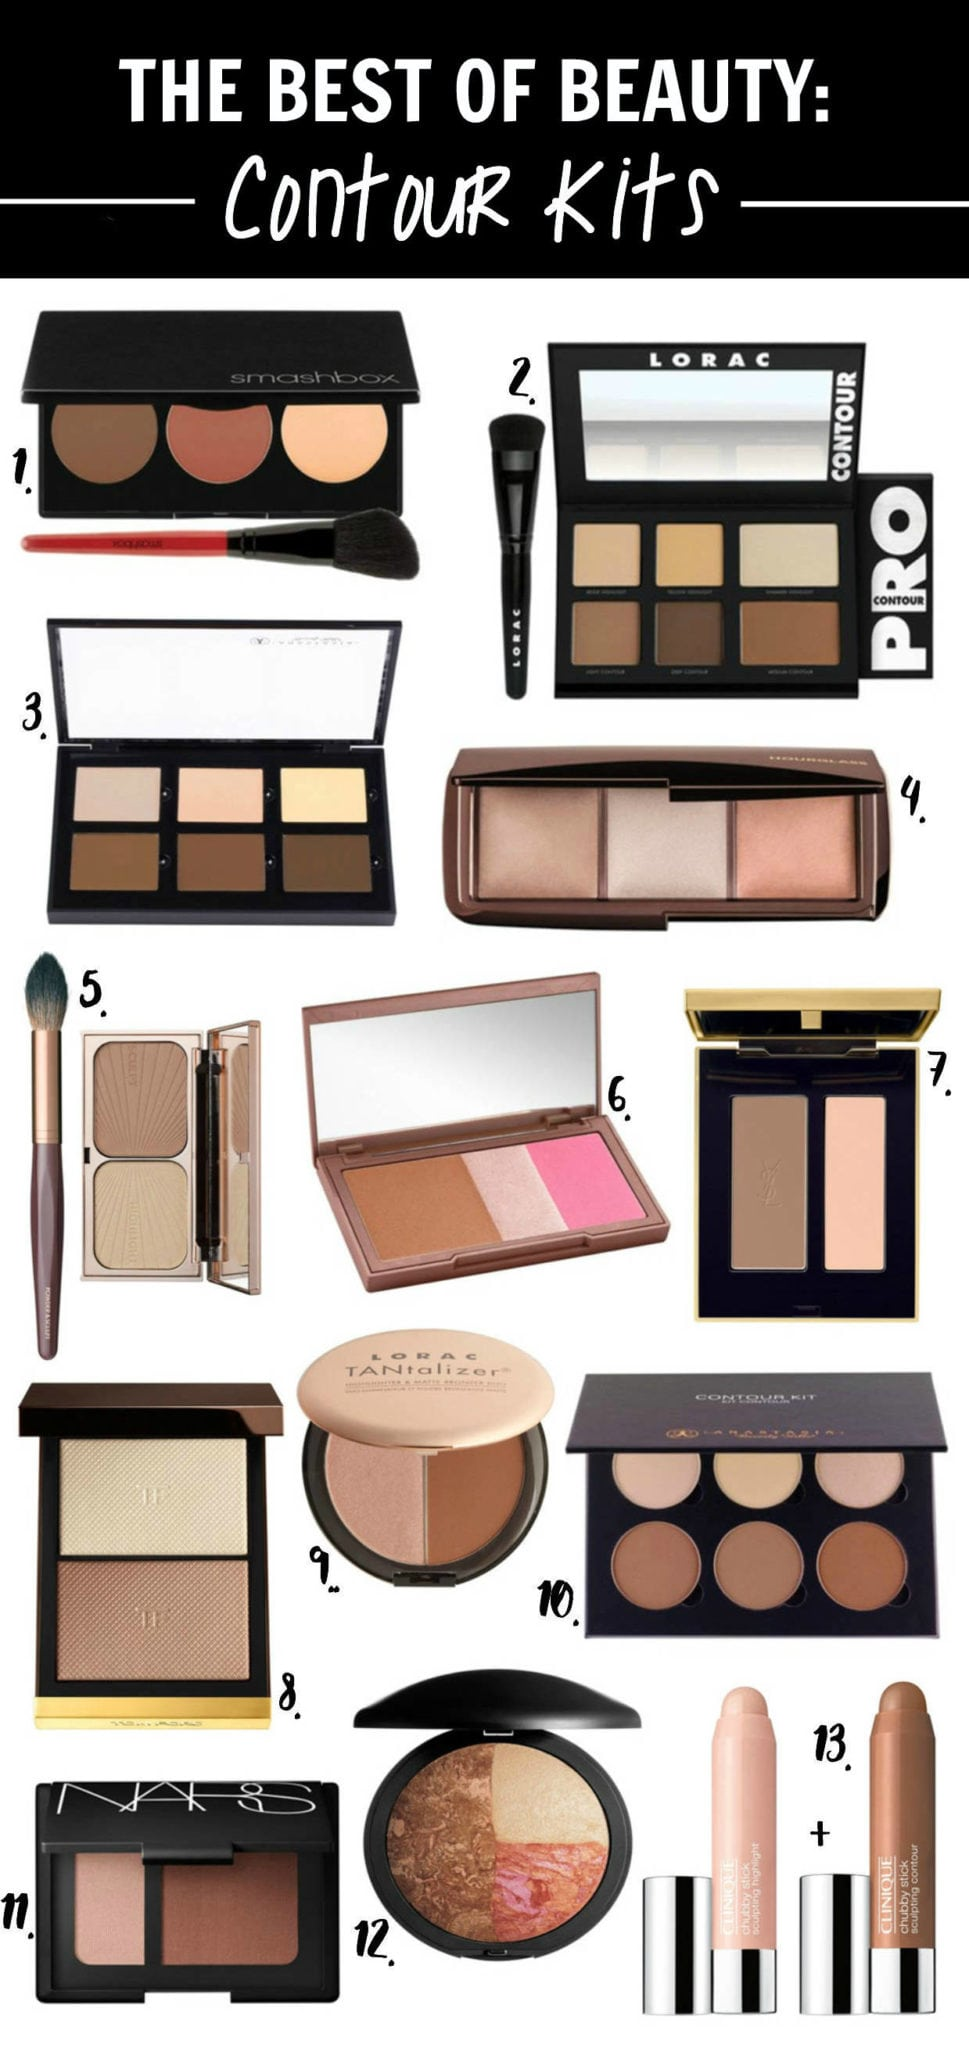 The Best Of: Contour Kits